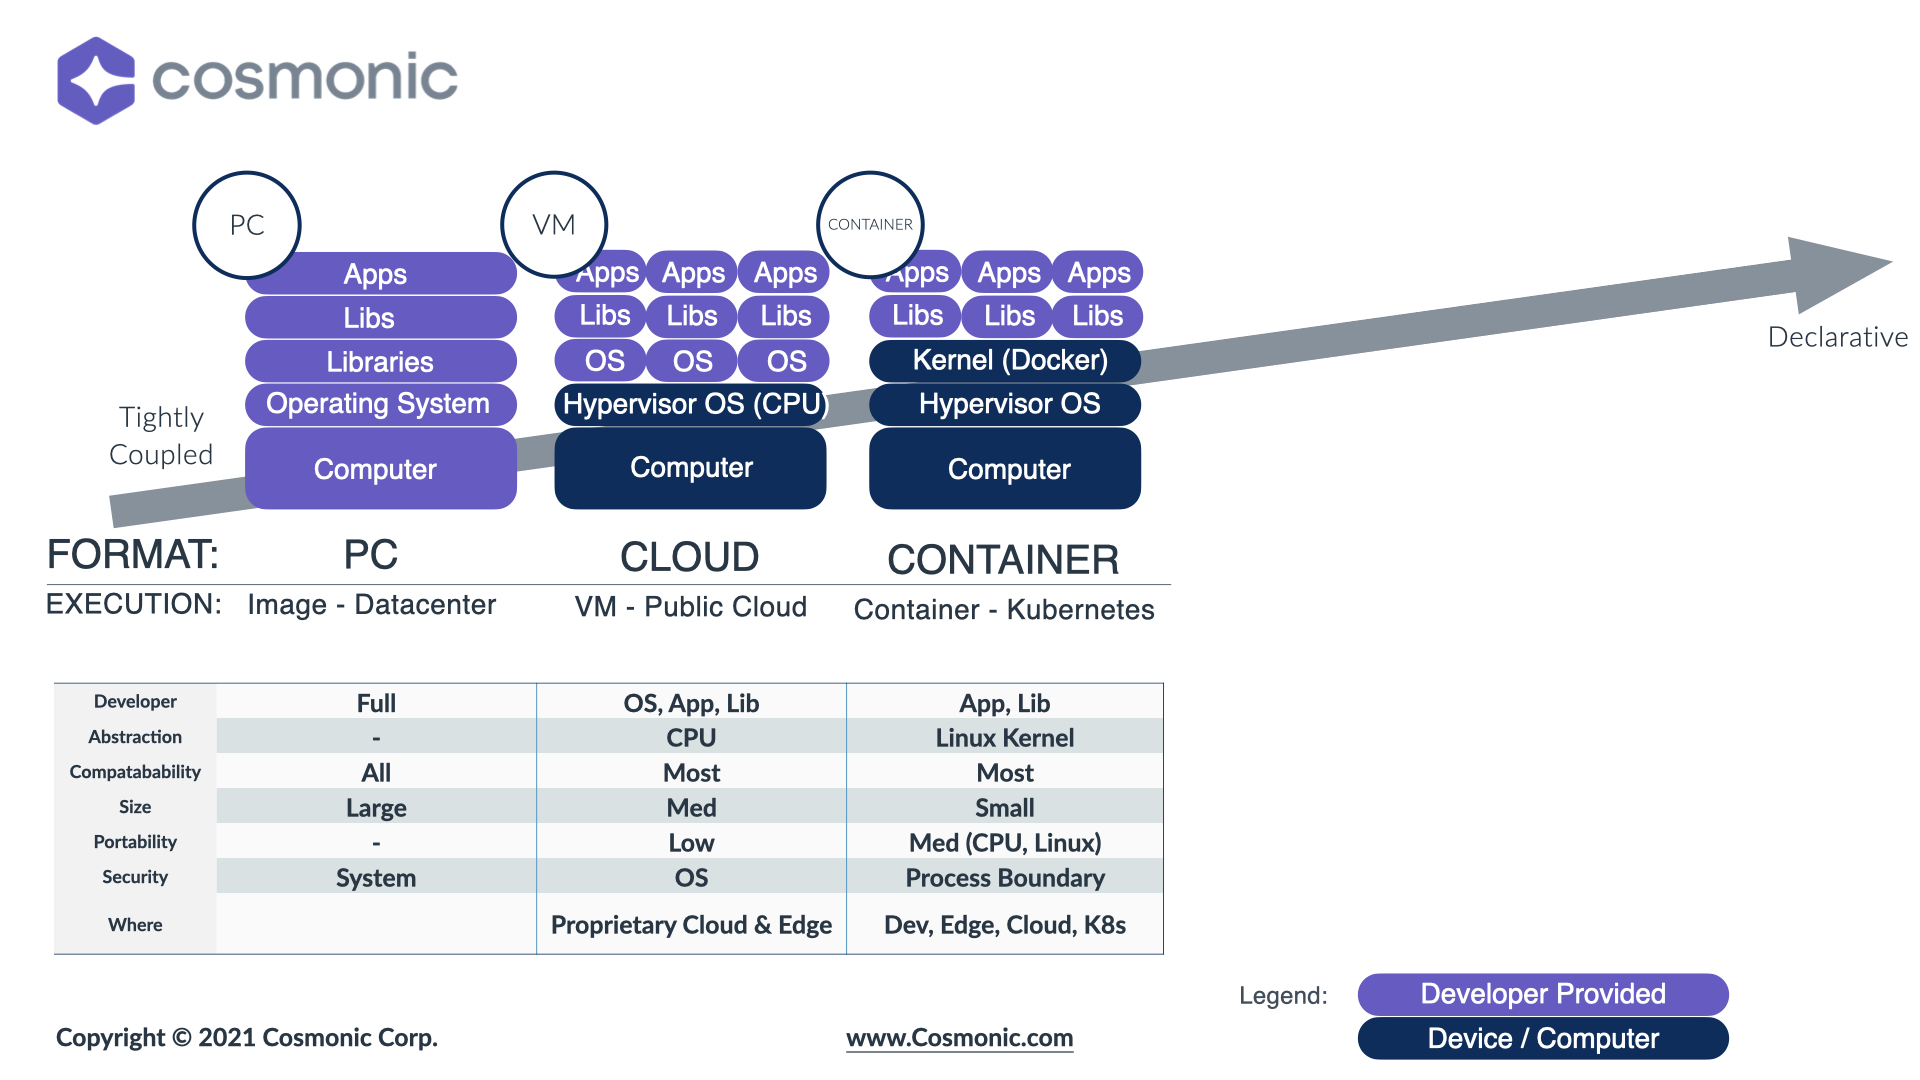 Epochs of Cloud Computing Technology - Containers